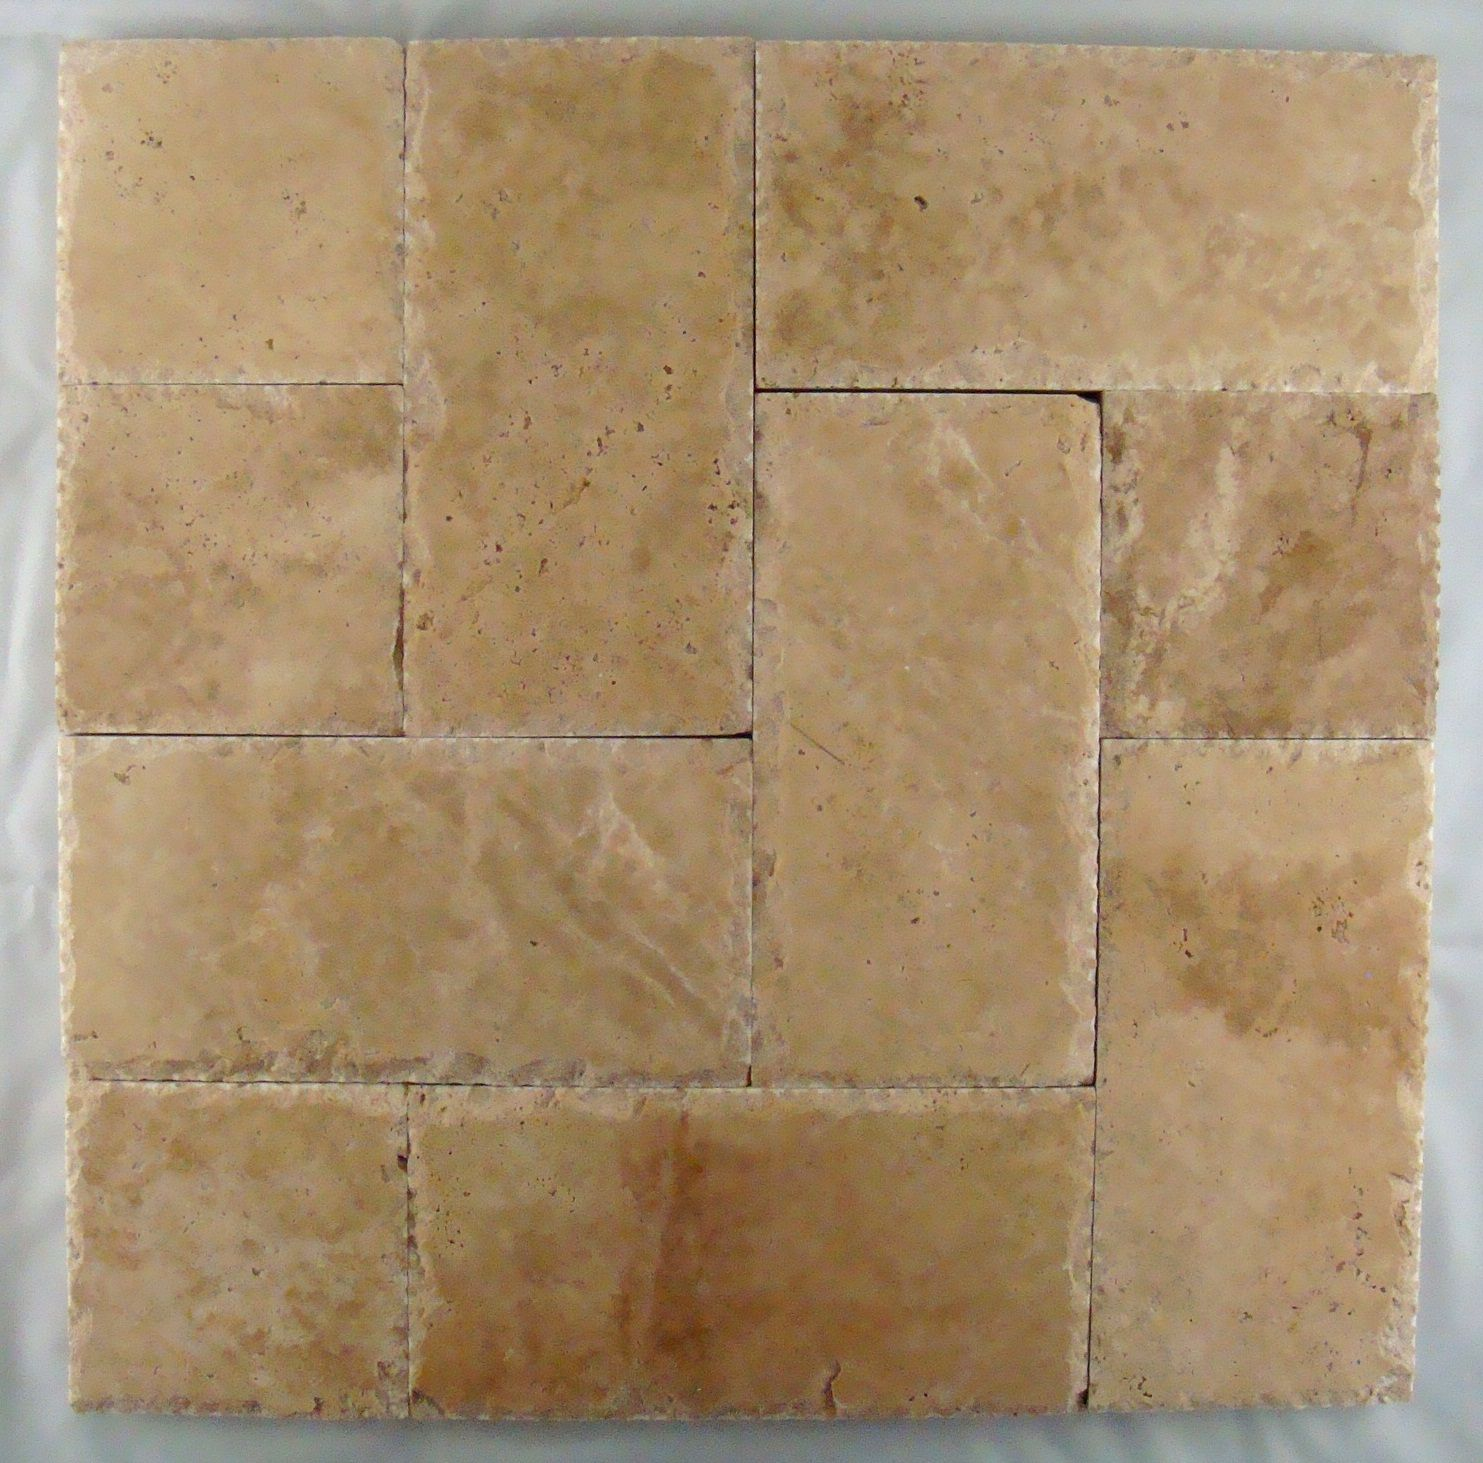 Alis pattern combo size percent 6x12 75 6x6 25 mosaic tile alis pattern combo size percent 6x12 75 6x6 25 mosaic tile patterns pinterest tile dailygadgetfo Image collections